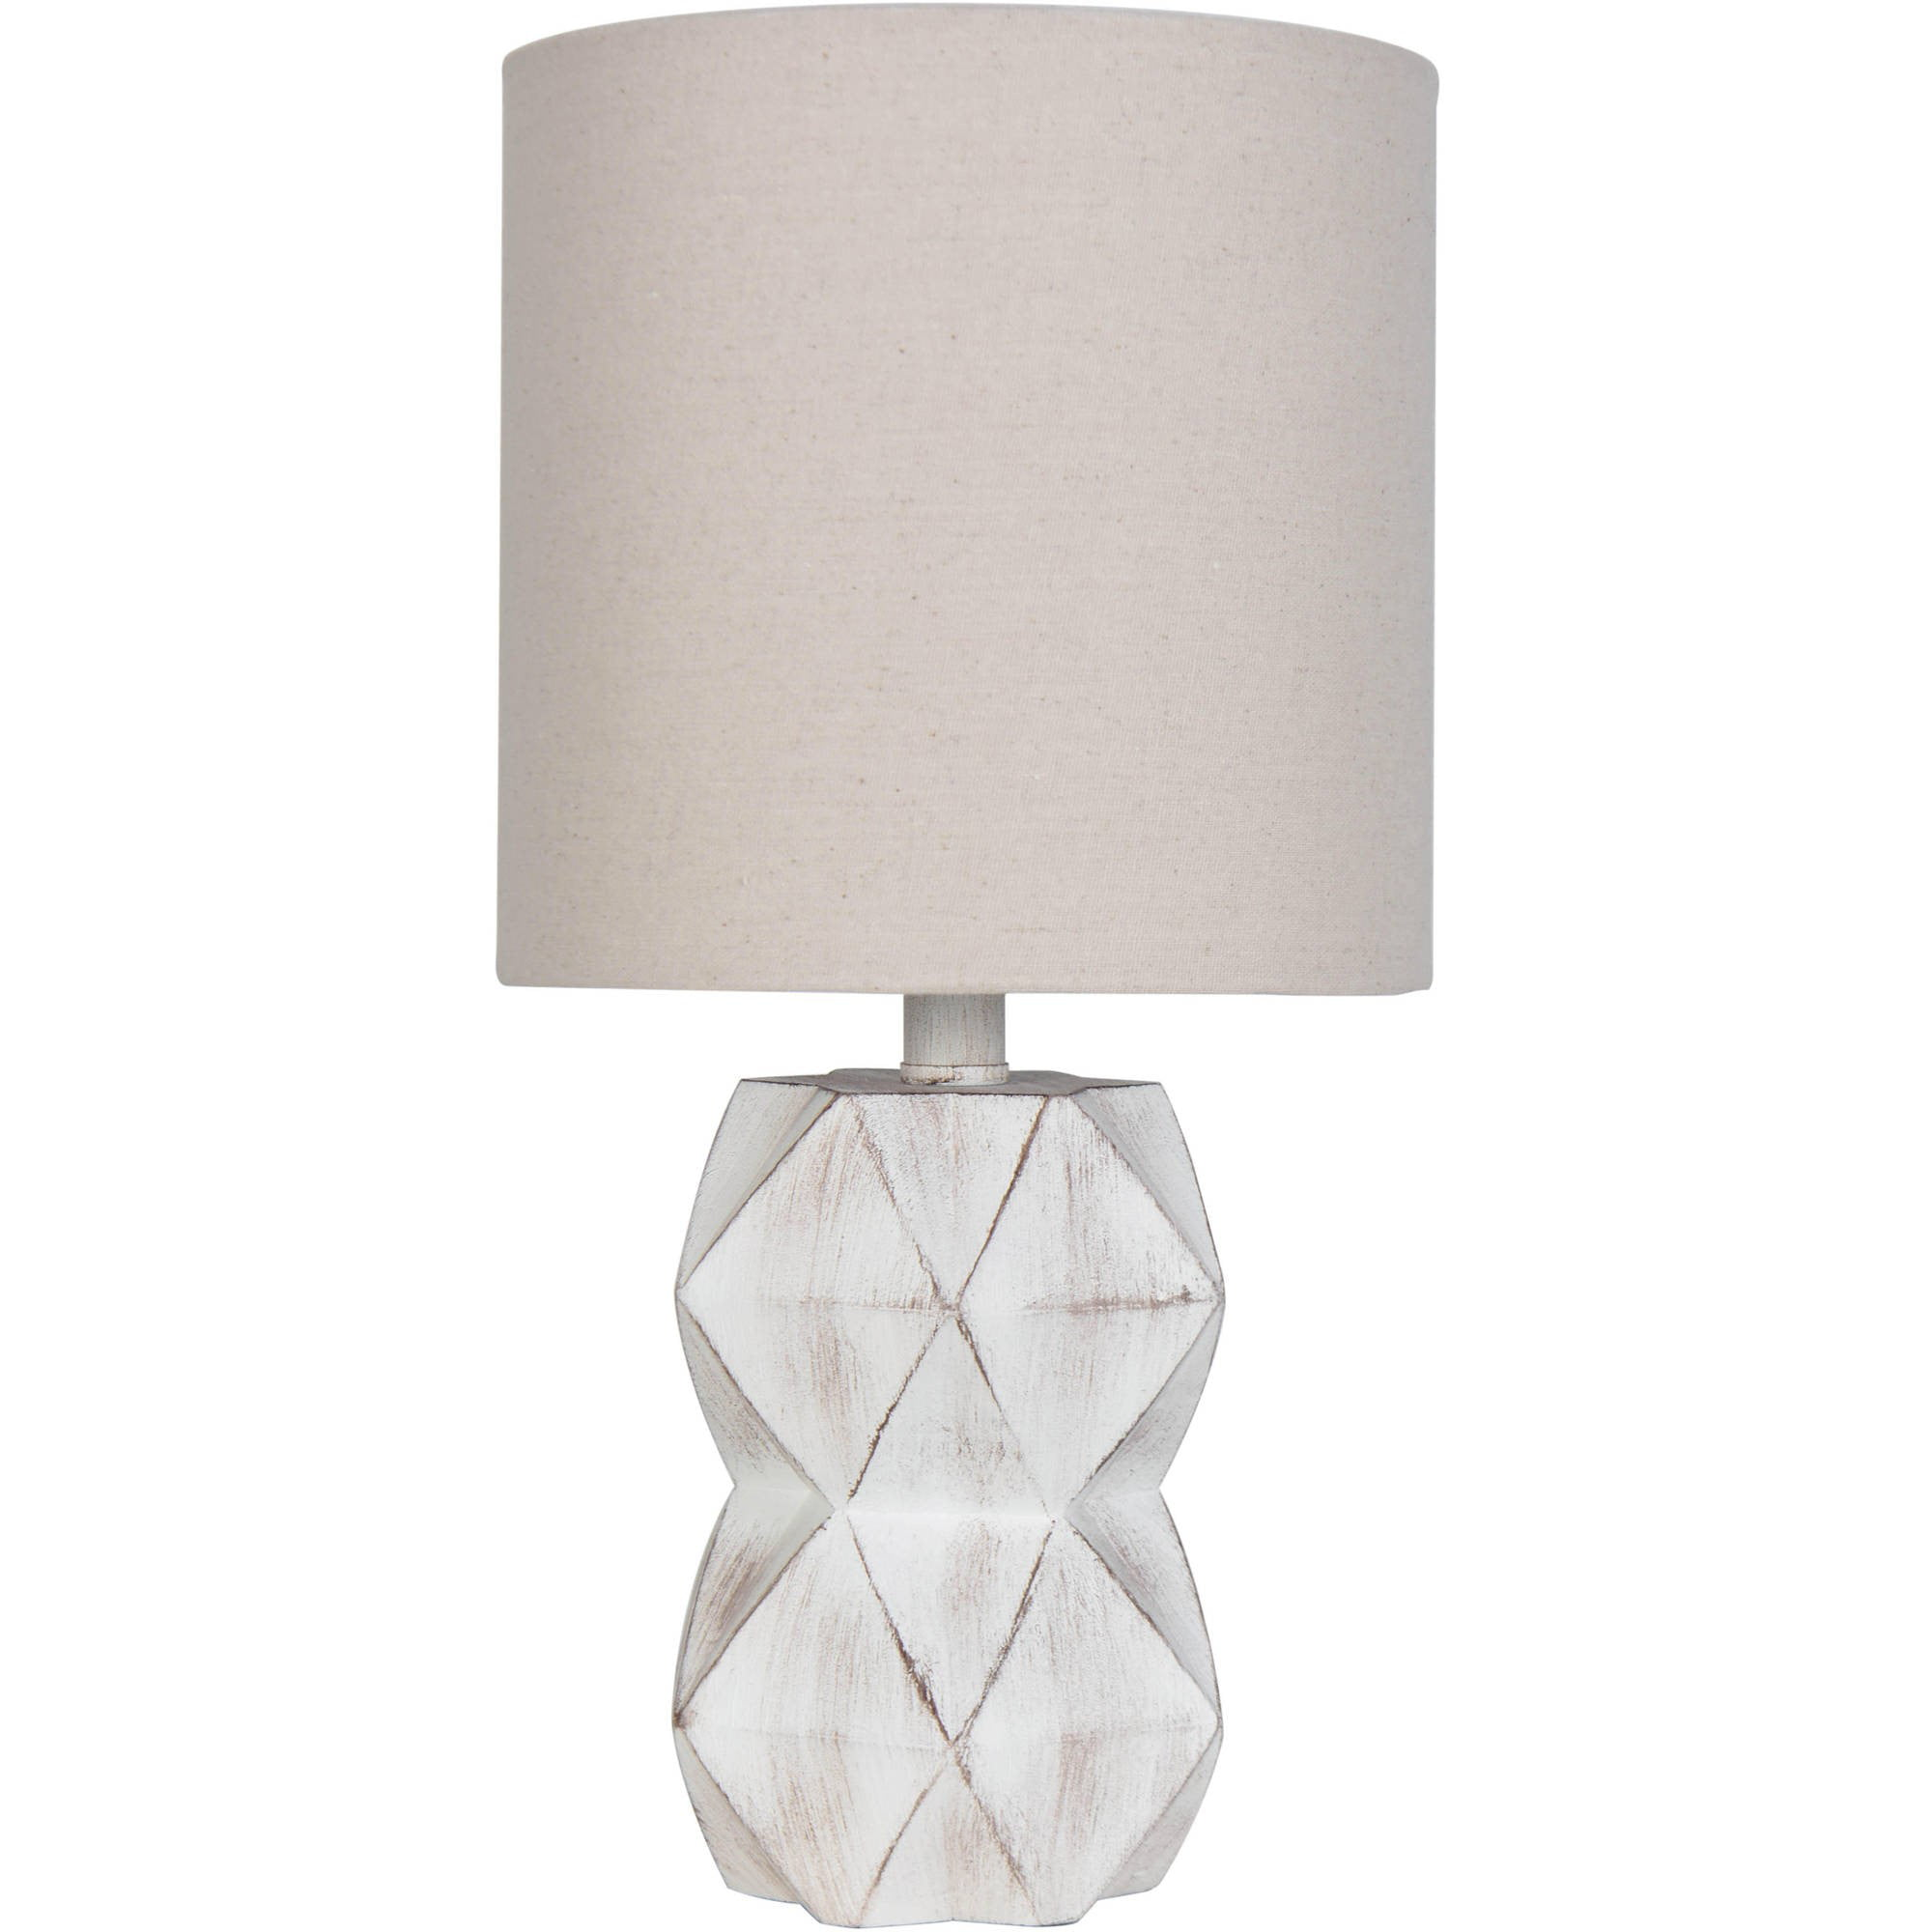 Better Homes and Gardens White Wash Faceted Faux Wood Table Lamp by Mastercraft Distribution USA Inc